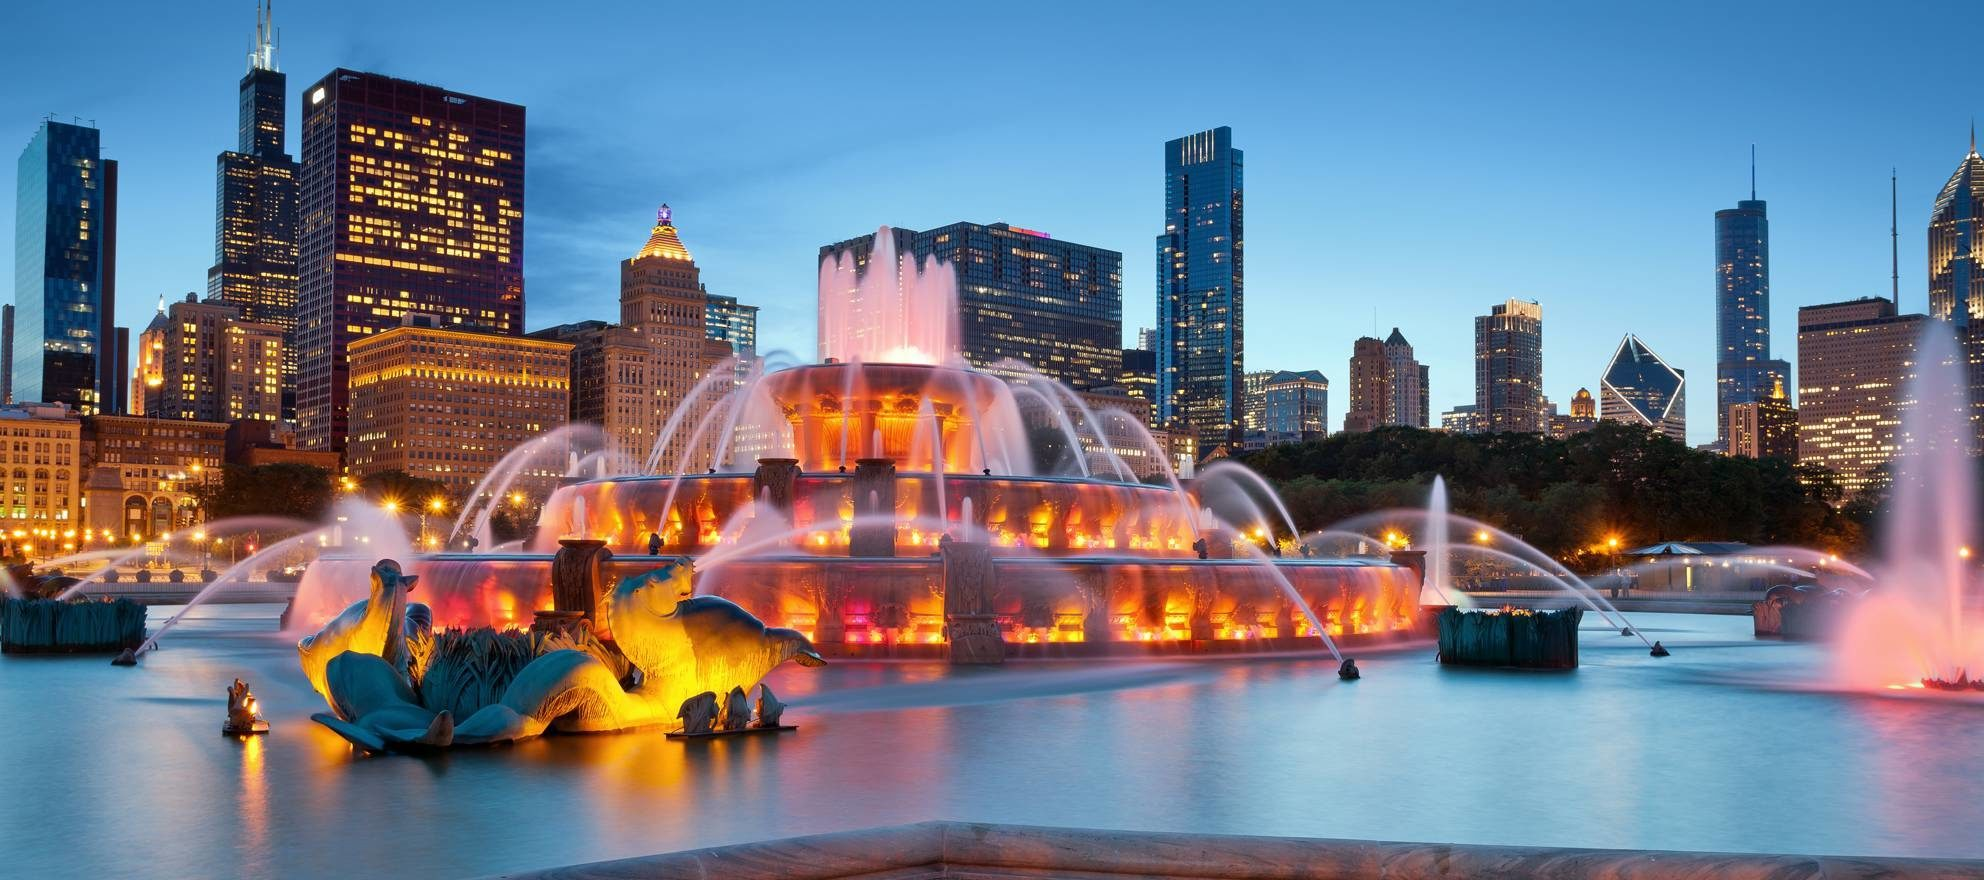 10 fun facts about Chicago